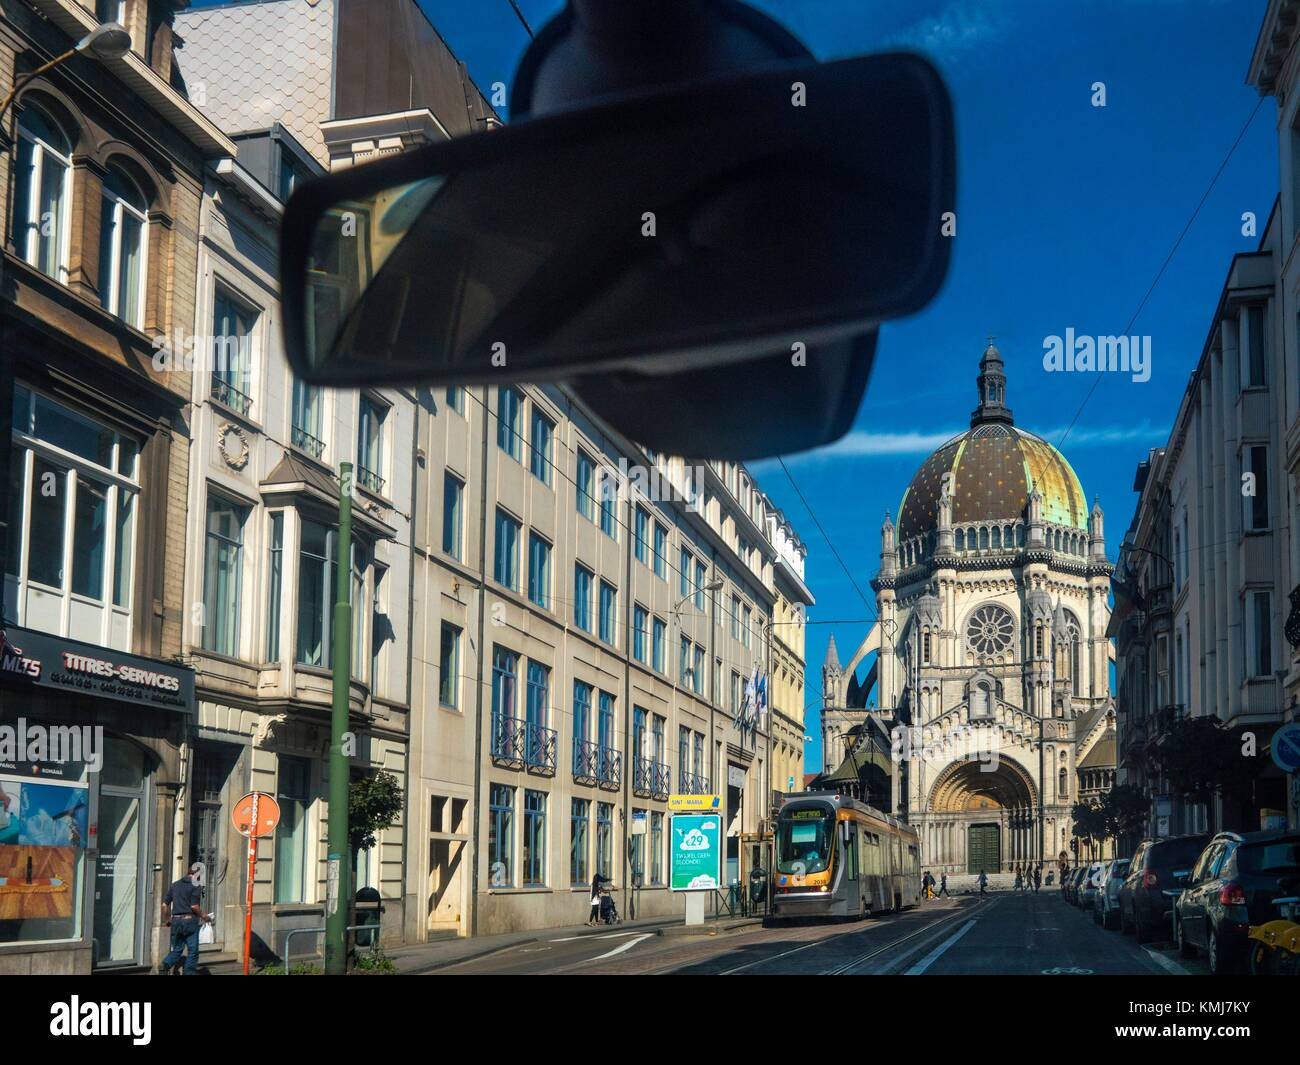 Belgium, Brussels, Sainte Marie church on the top of Rue Royale. Stock Photo